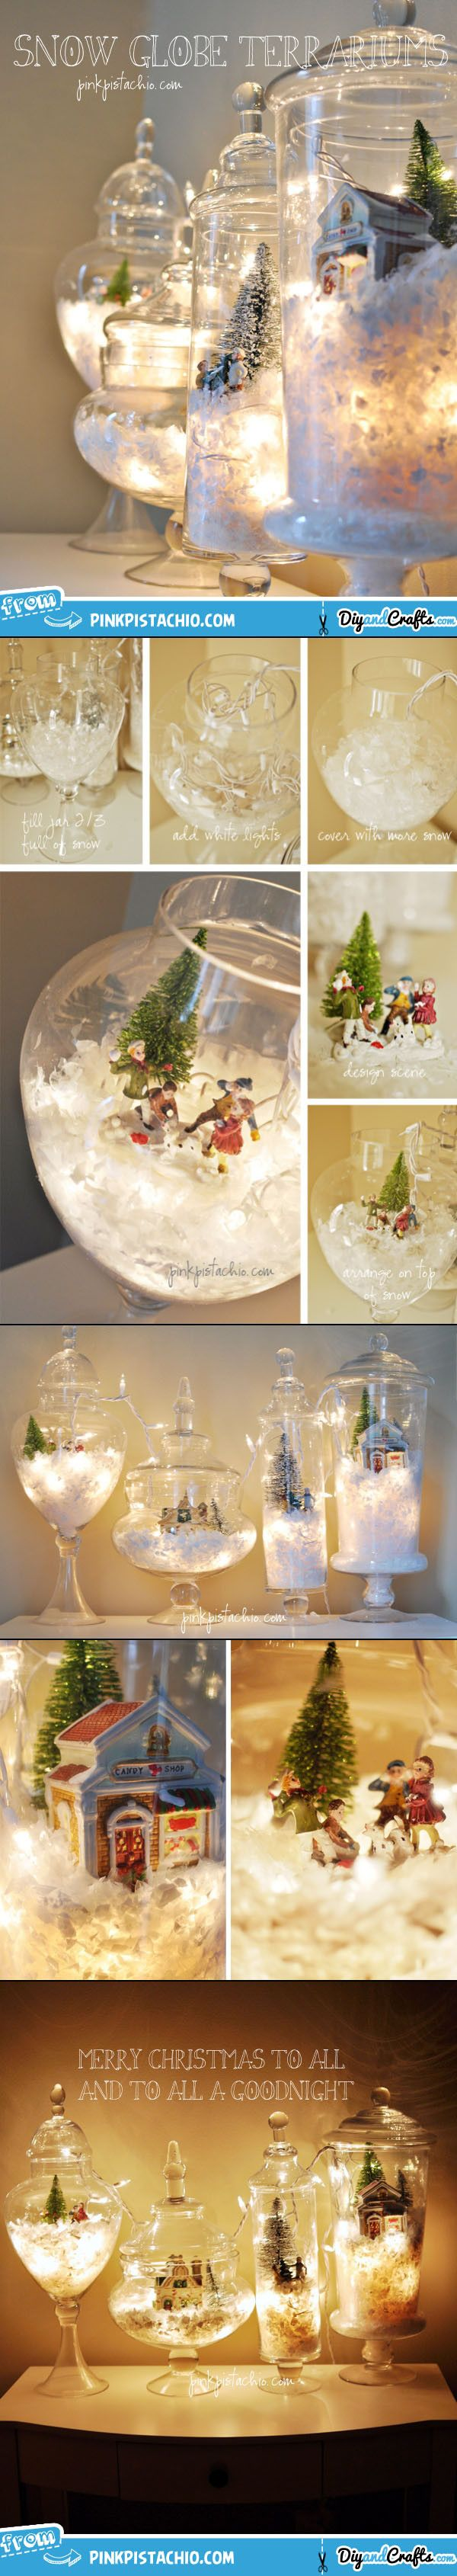 Snow Globe Terrariums- cutest idea for apothecary jars I've seen yet! I'd definitely like to try this.